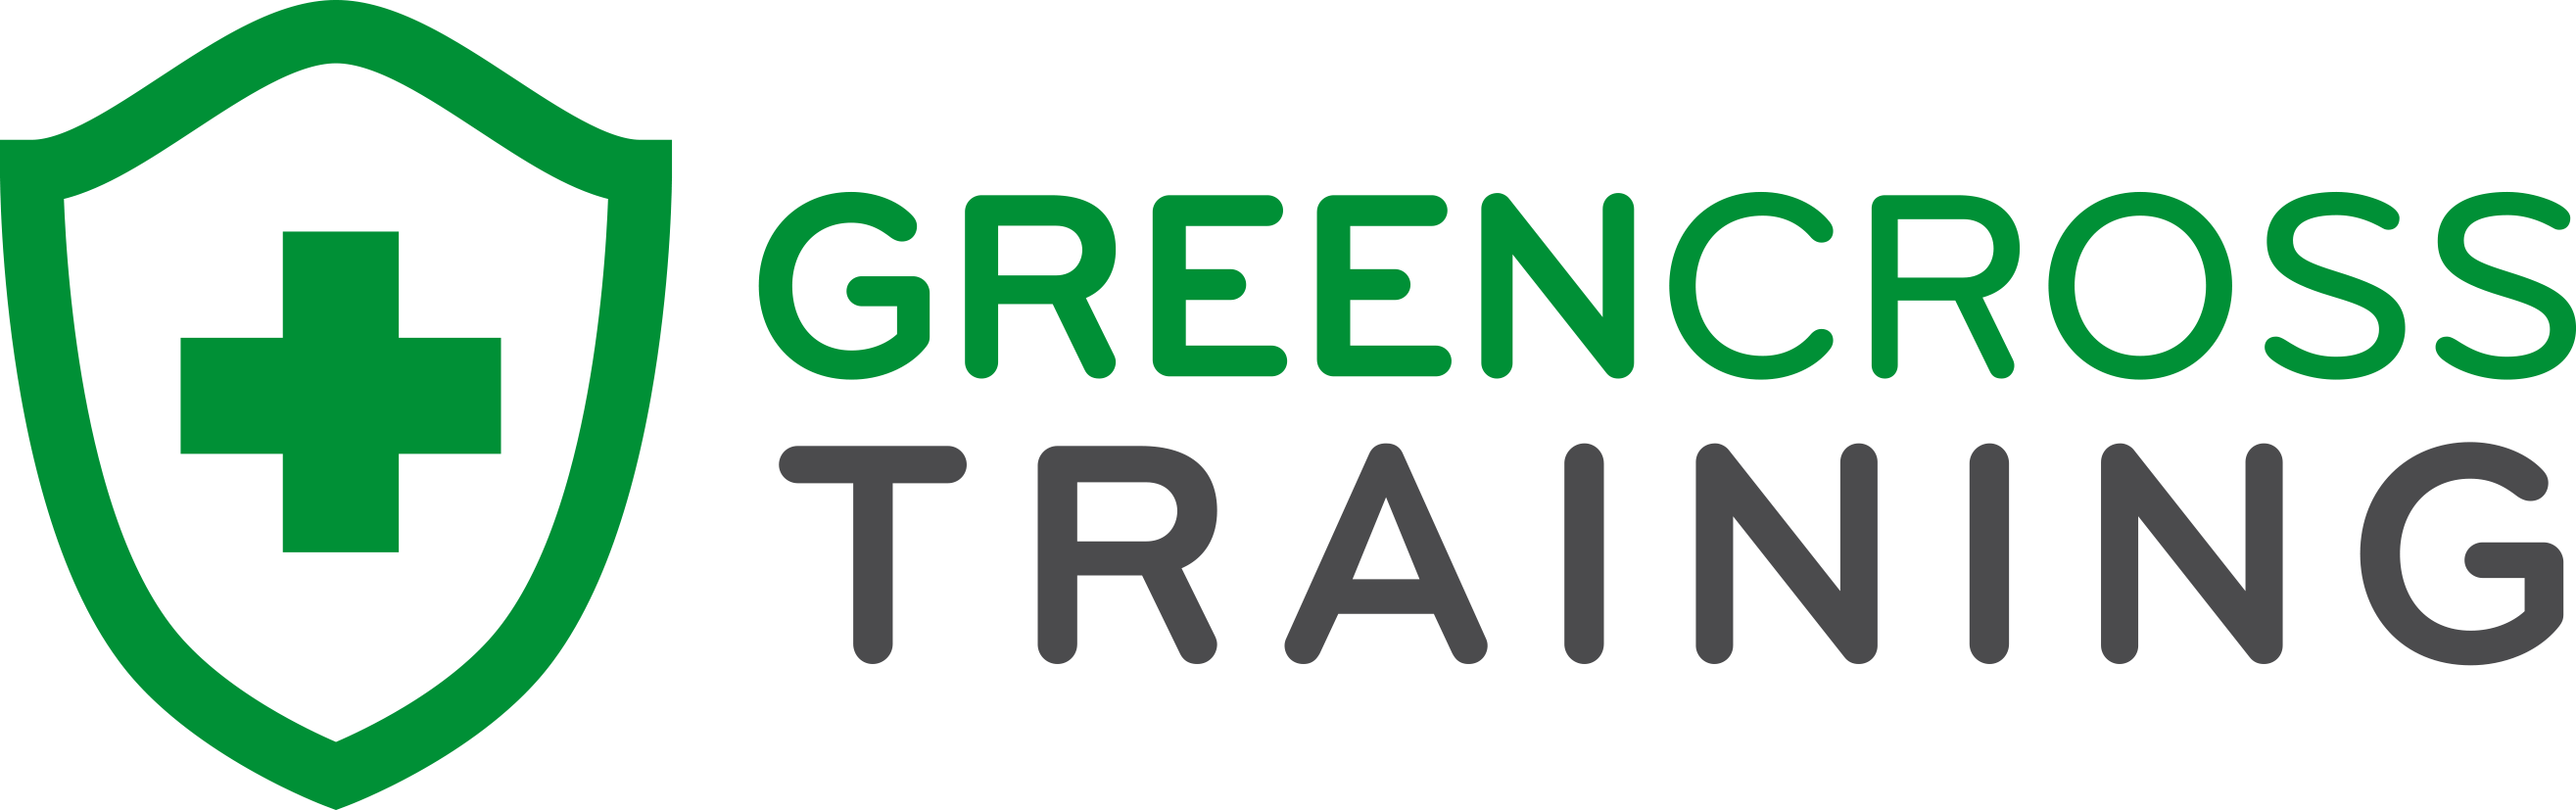 Green Cross Training Ltd